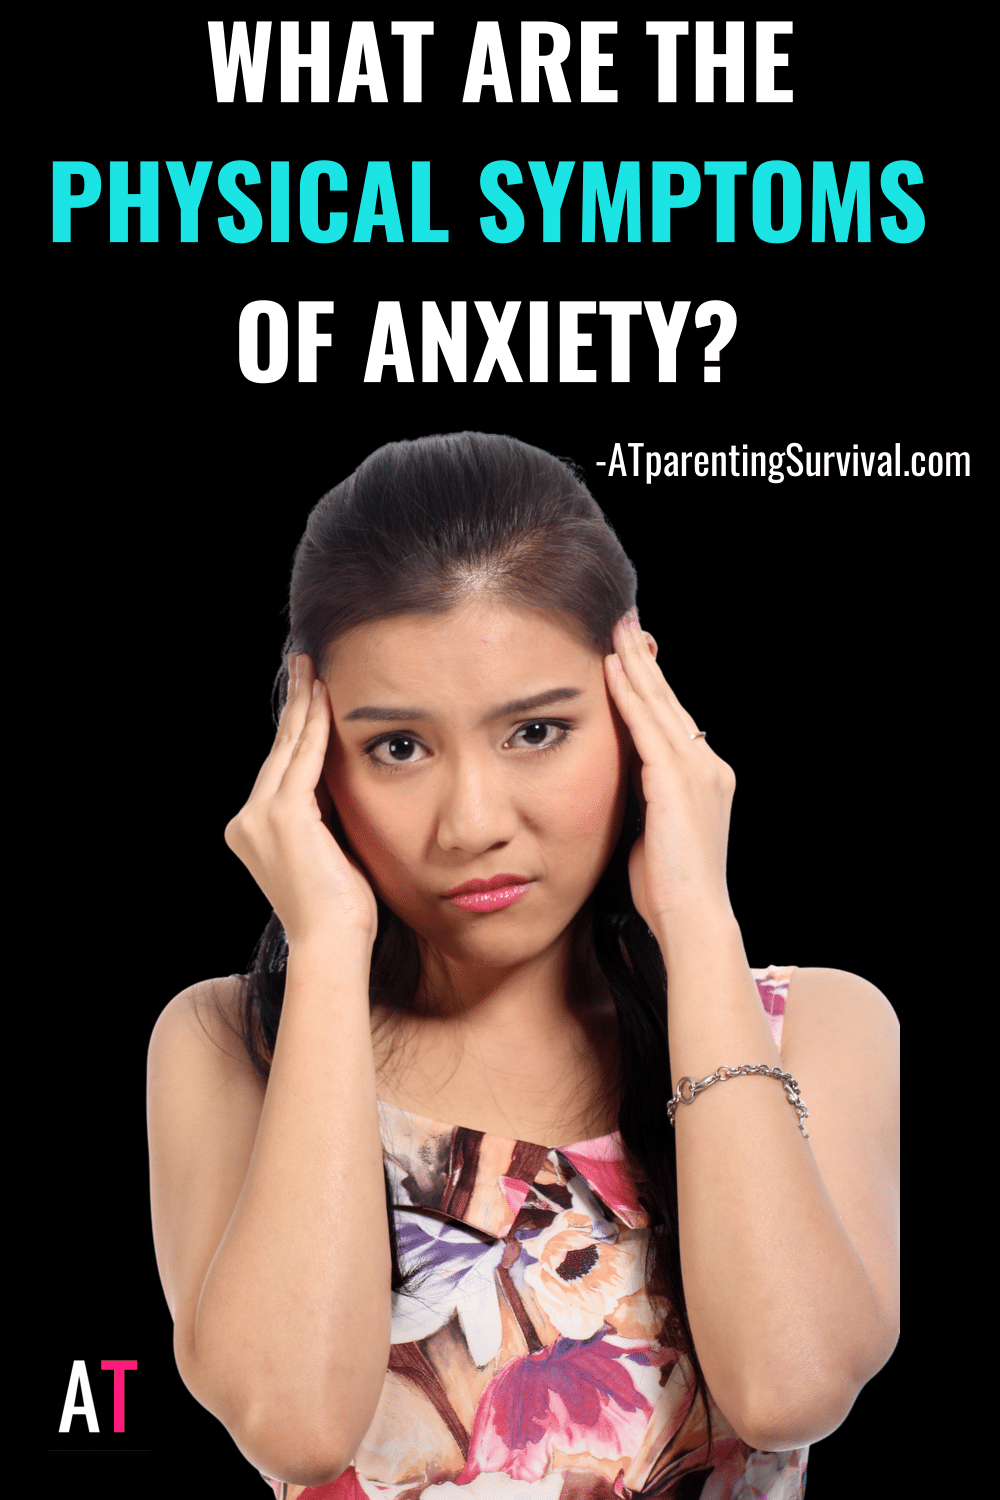 What are the Physical Symptoms of Anxiety [Video]